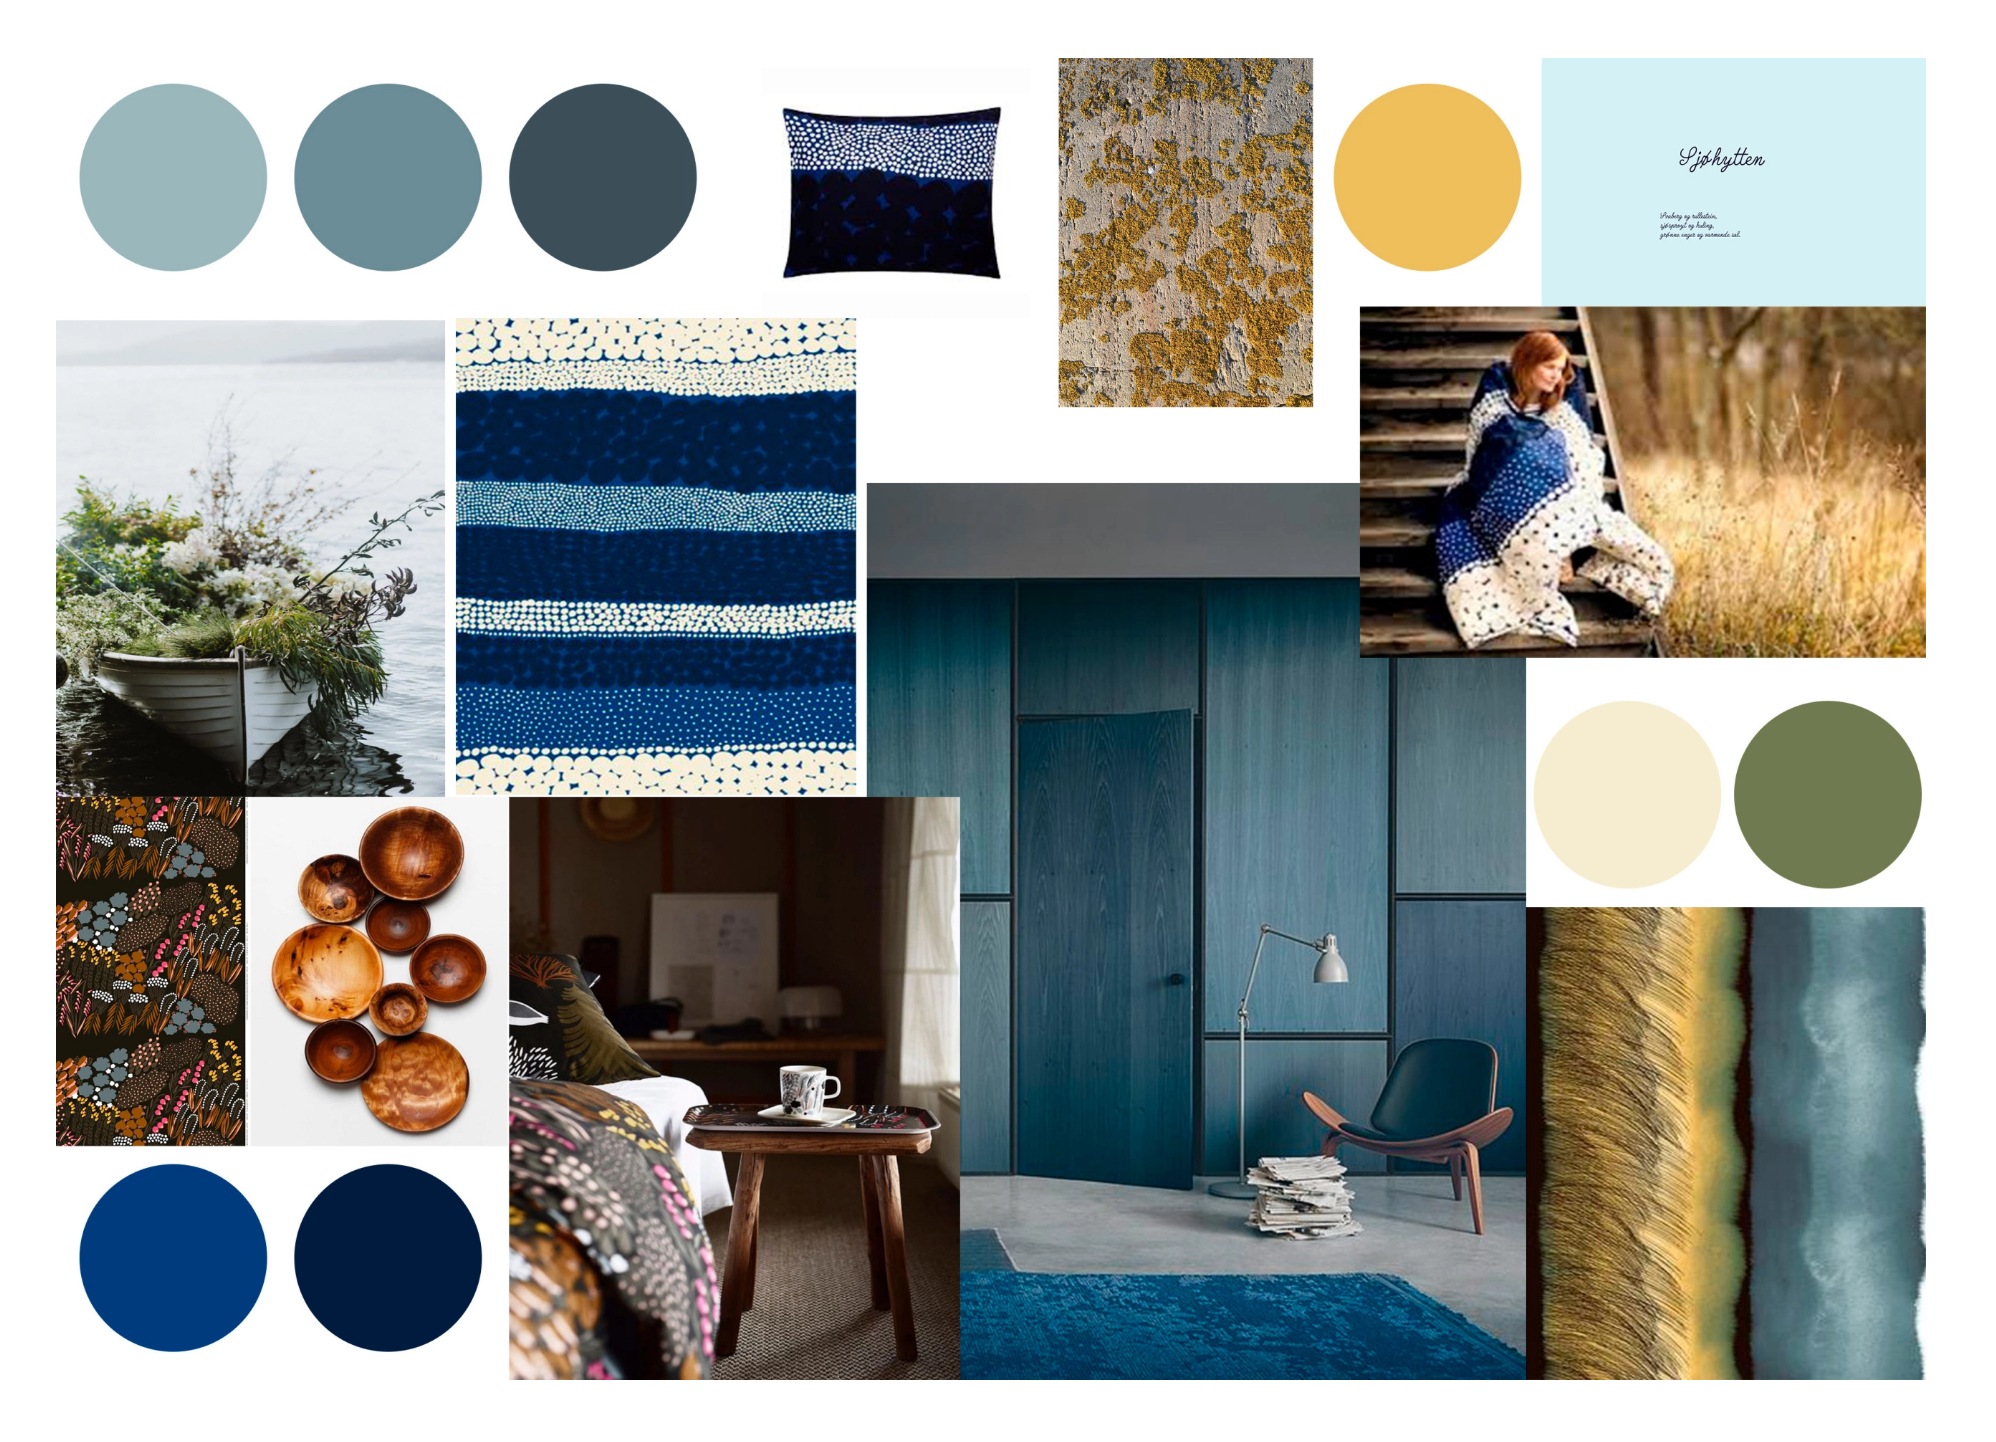 Textile - Surfaces and wallpaper. Indoor and outdoor. Moodboard. A cabin by the sea